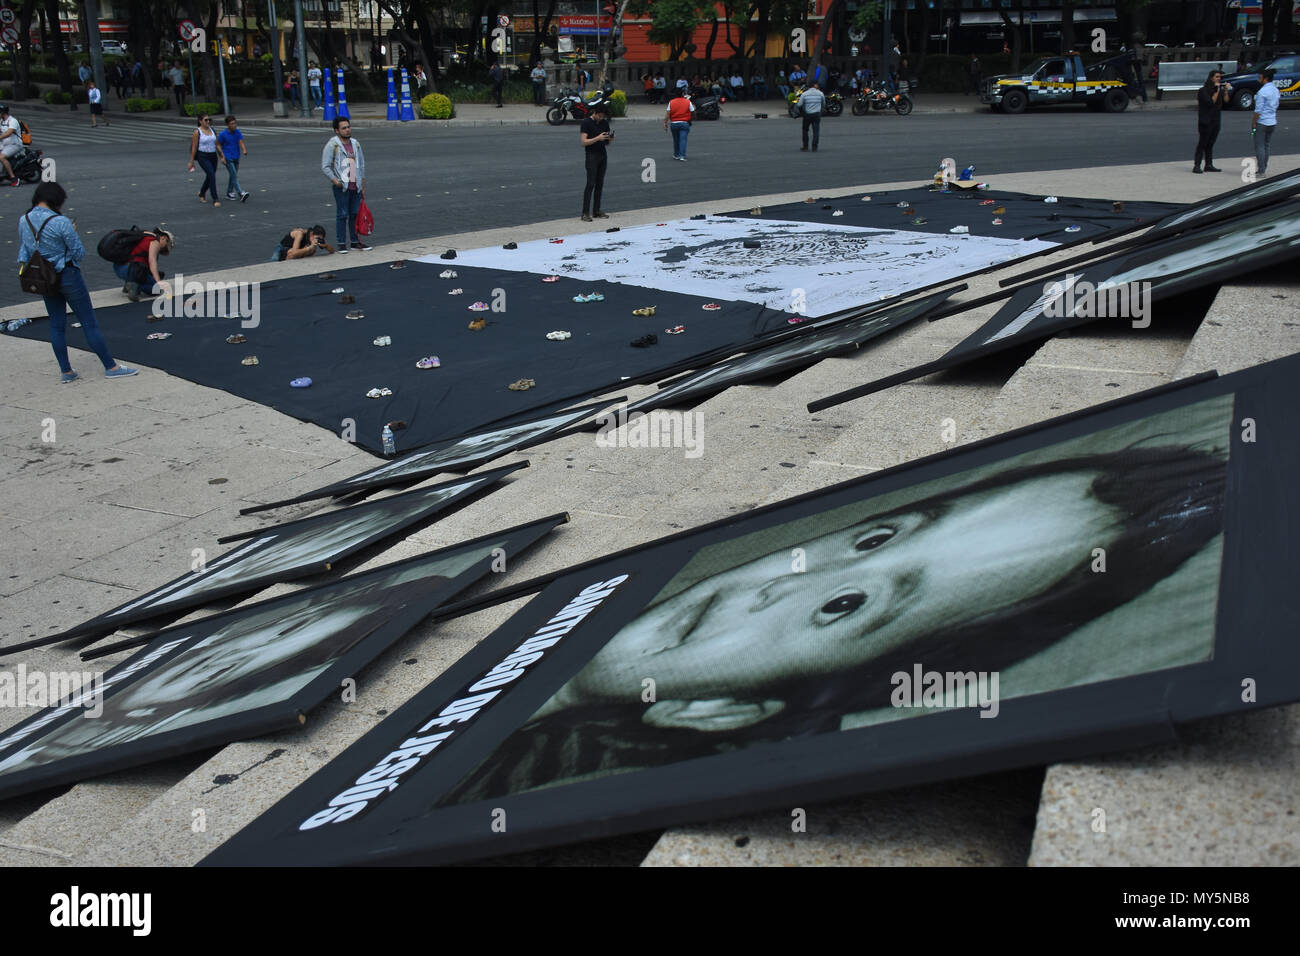 Mexico City, Mexico. 5th June, 2018. Portraits of the deceased children are seen displayed during the 9th anniversary protest. Demonstration to the impunity and corruption of the Government during the 9 years after the tragedy on 05, June 2009. 25 little girls and 24 little boys died as a result of a fire in the ABC Nursery in Hermosillo, Sonora. Eduardo Bours was the governor. Credit: Carlos Tischler/SOPA Images/ZUMA Wire/Alamy Live News Stock Photo